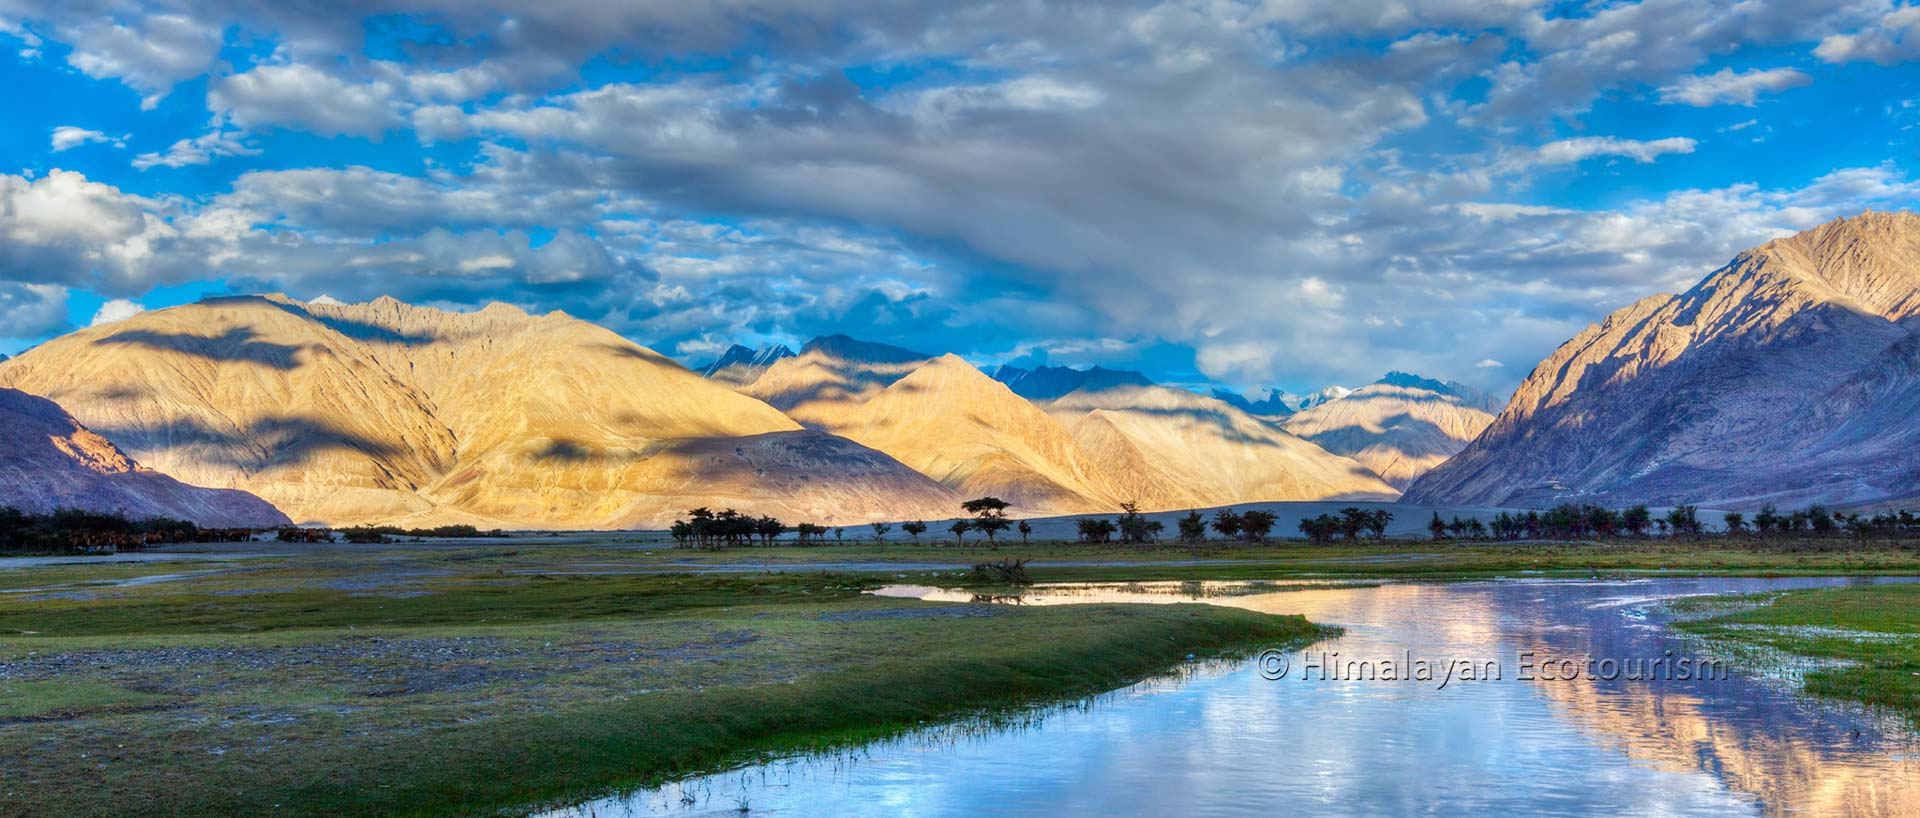 Landscape of the Nubra valley, Ladakh